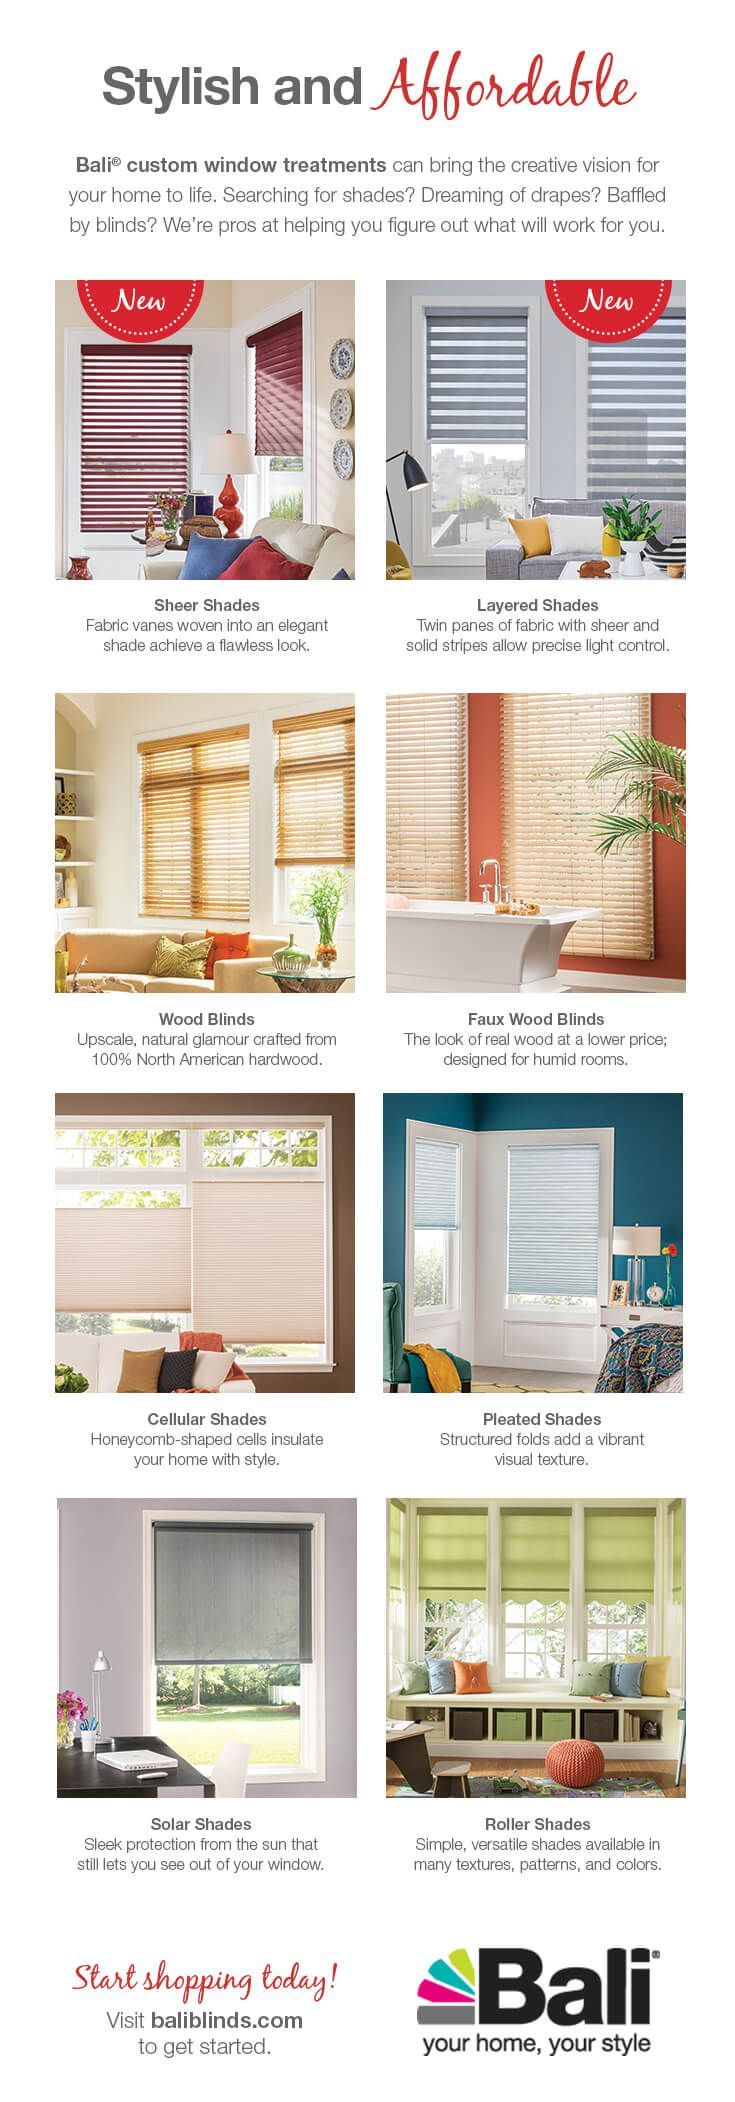 Bali custom window treatments are stylish and affordable. Find something for your home in one of our top product lines: sheer shades, layered shades, wood blinds, faux wood blinds, cellular shades, pleated shades, solar shades, or roller shades. Choose your style and bring the creative vision of your home to life. @baliblinds